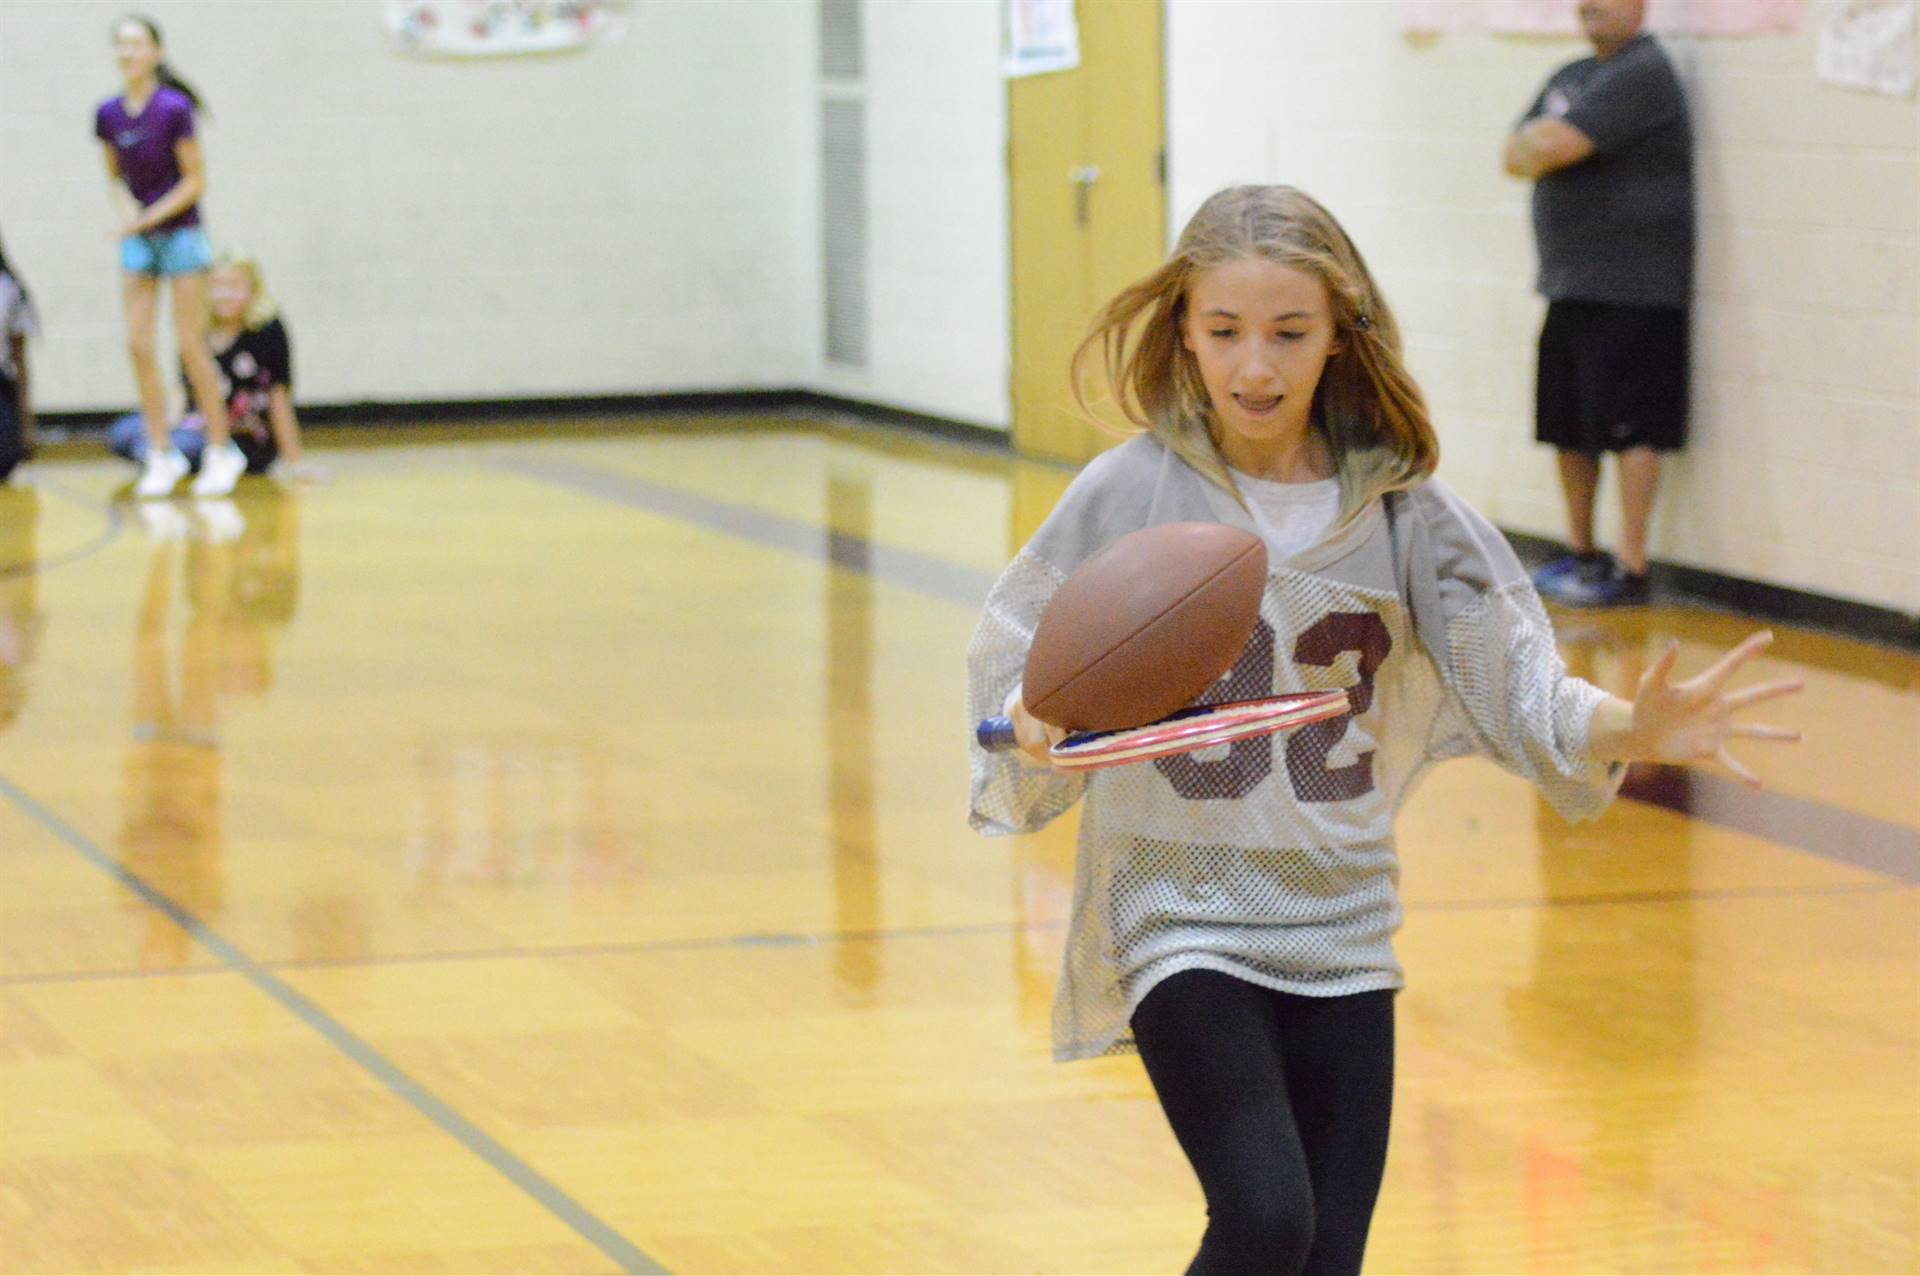 Student running with a tennis racket holding a football during an assembly.